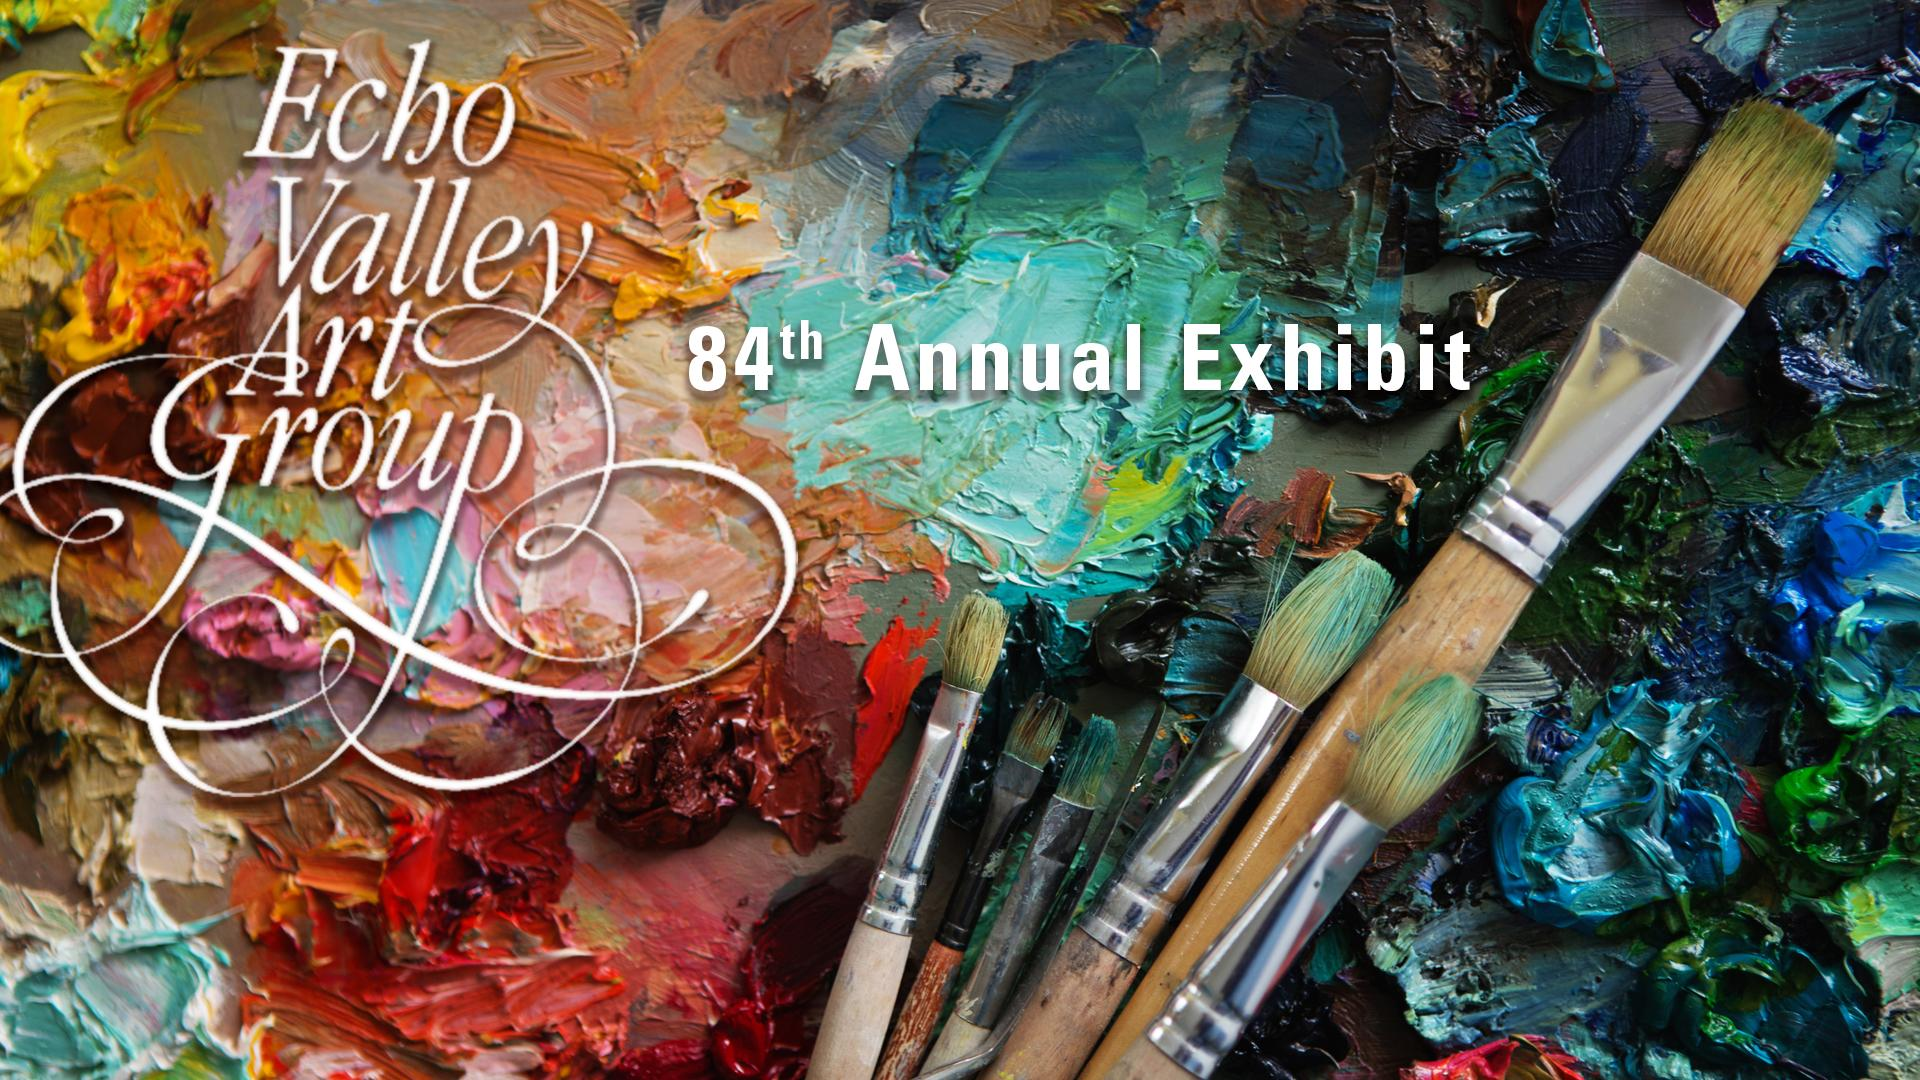 Echo Valley Art Group 84th Annual Exhibit